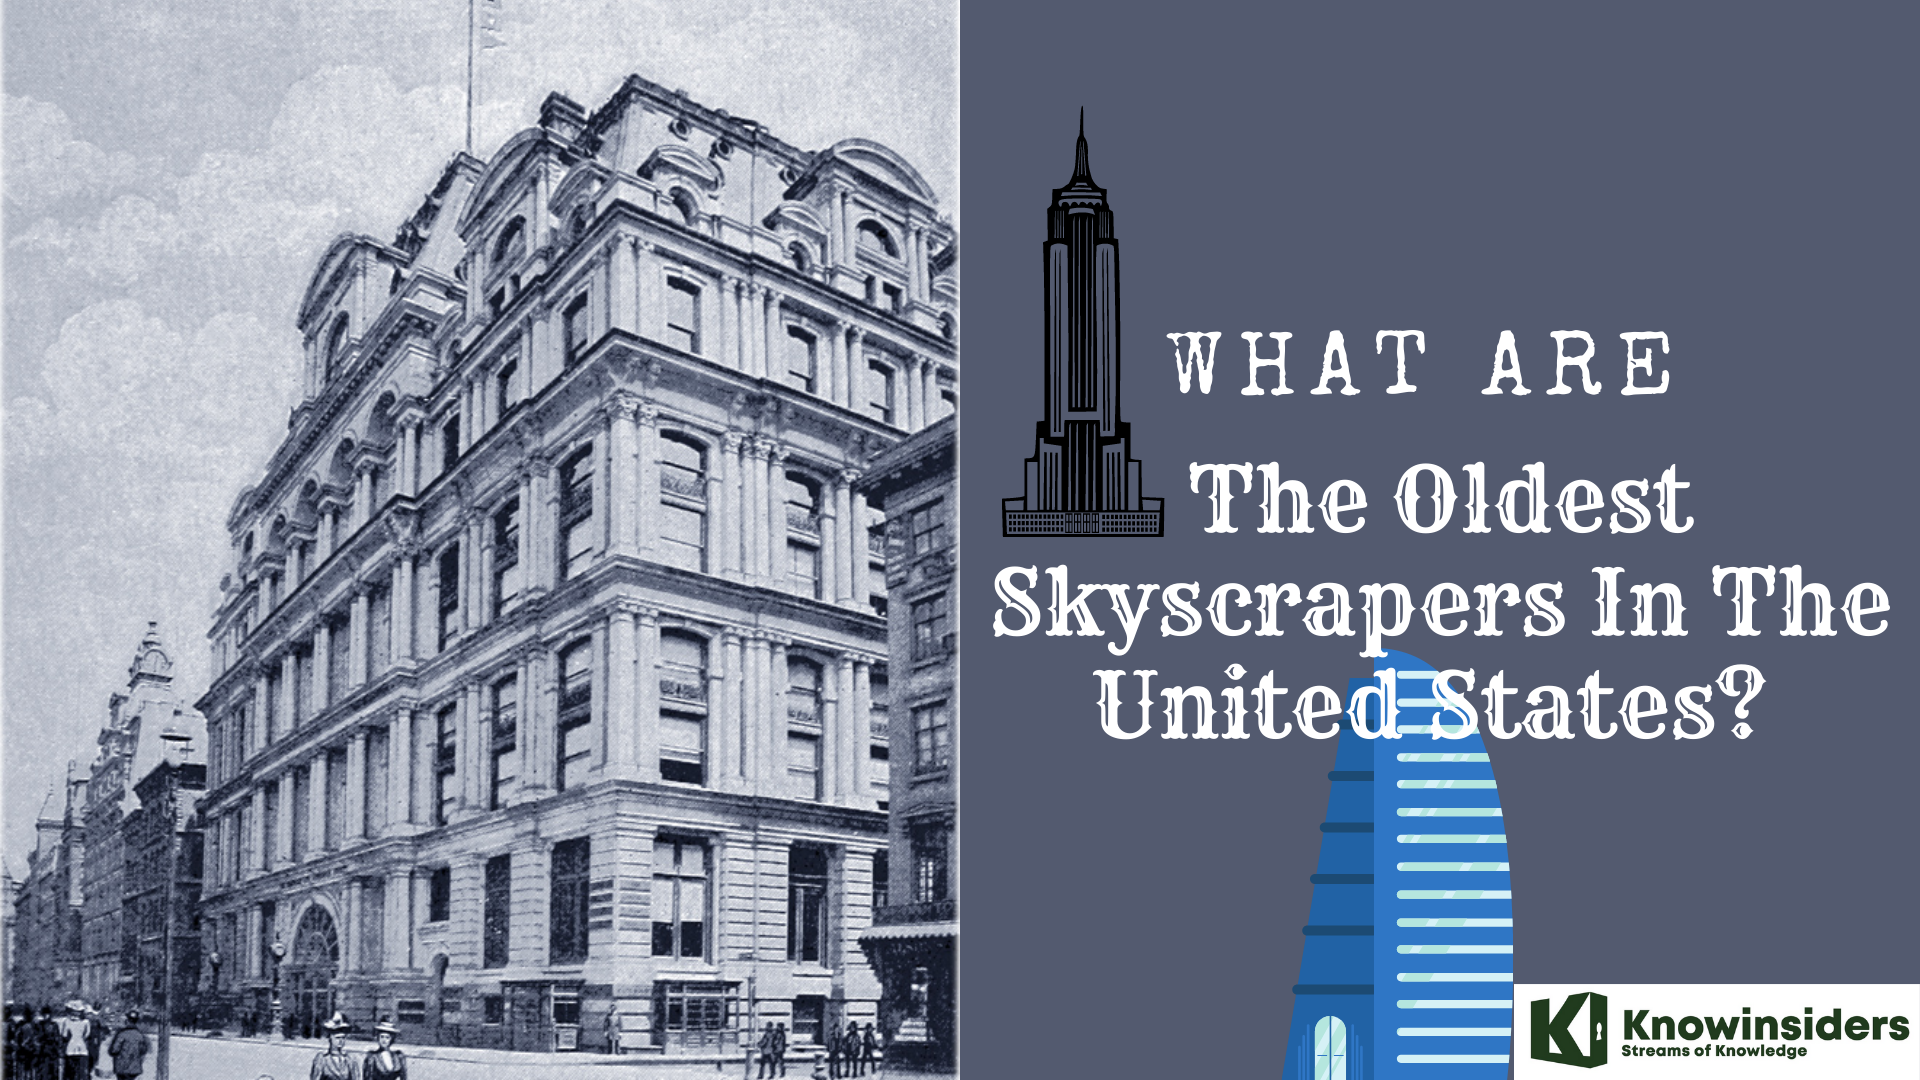 What Are The Oldest Skyscrapers In The United States?